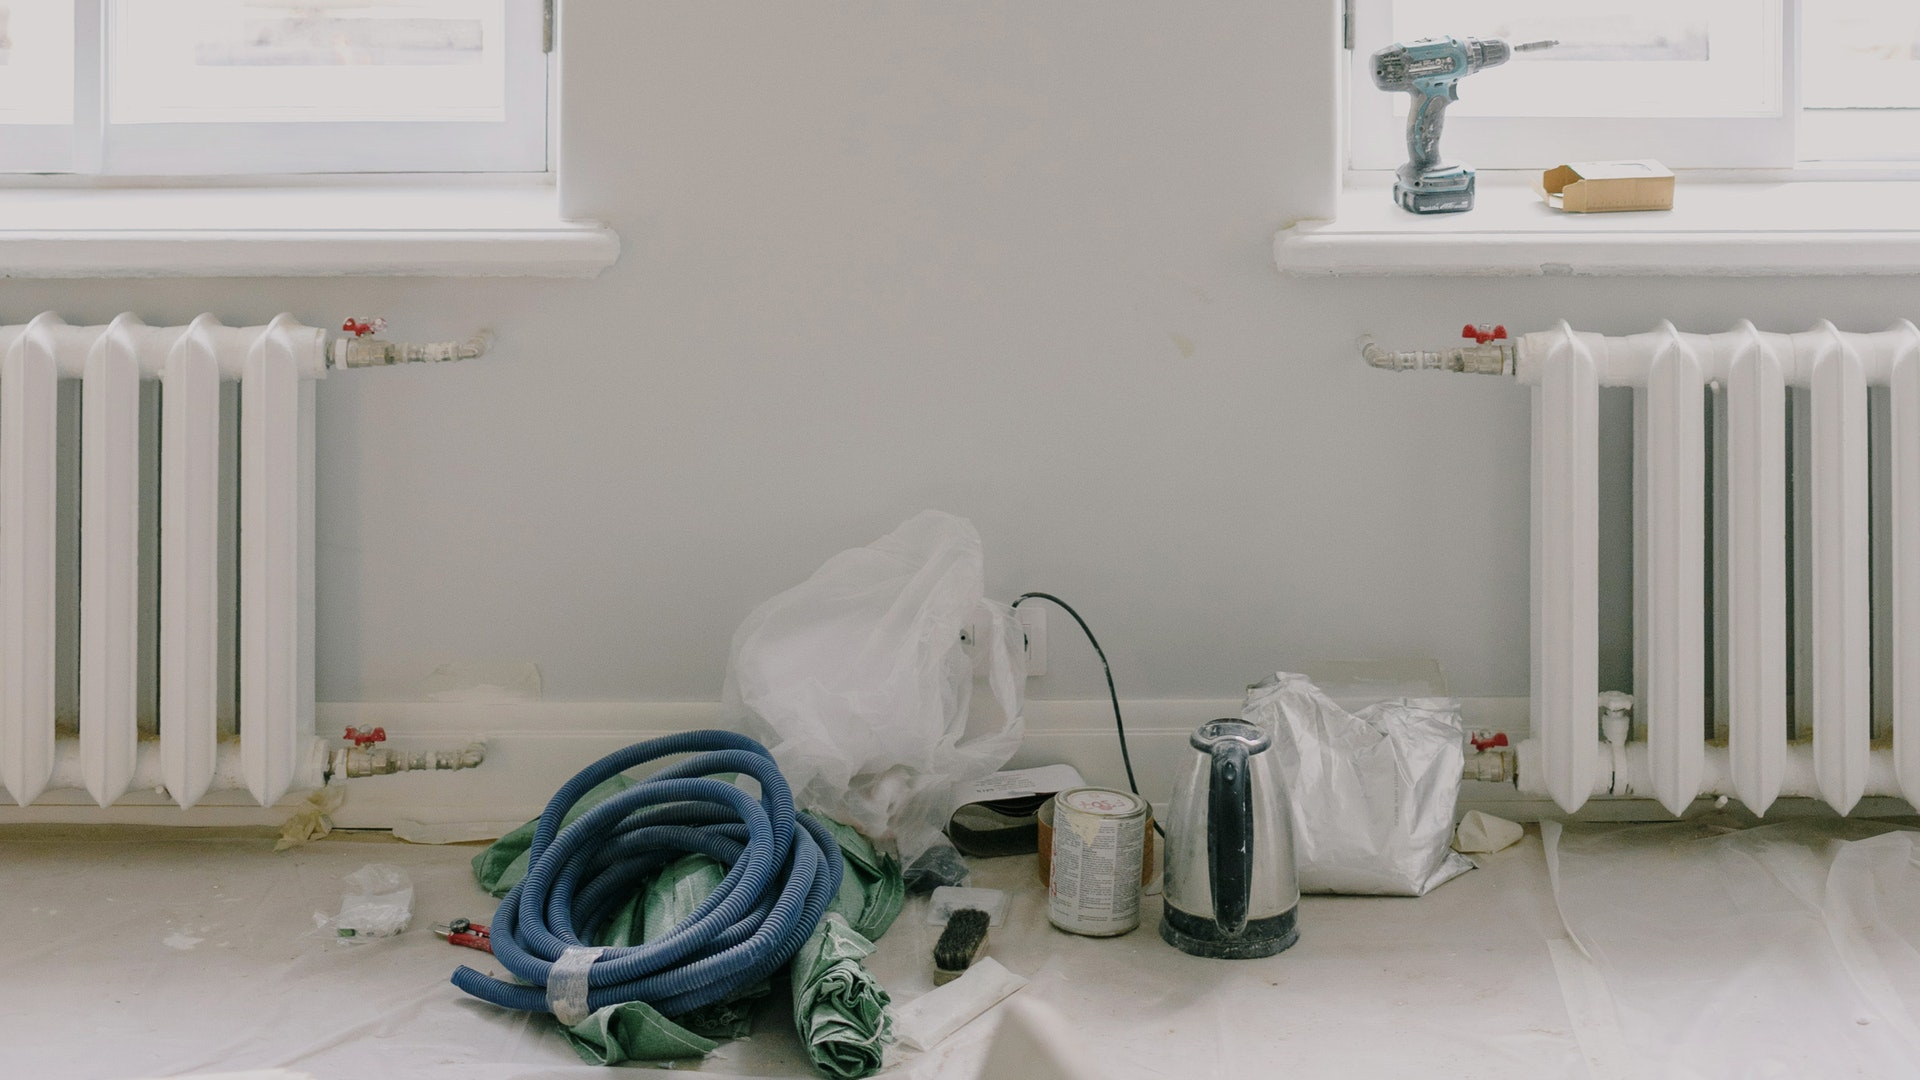 How Do You Go About Home Maintenance and Repairs